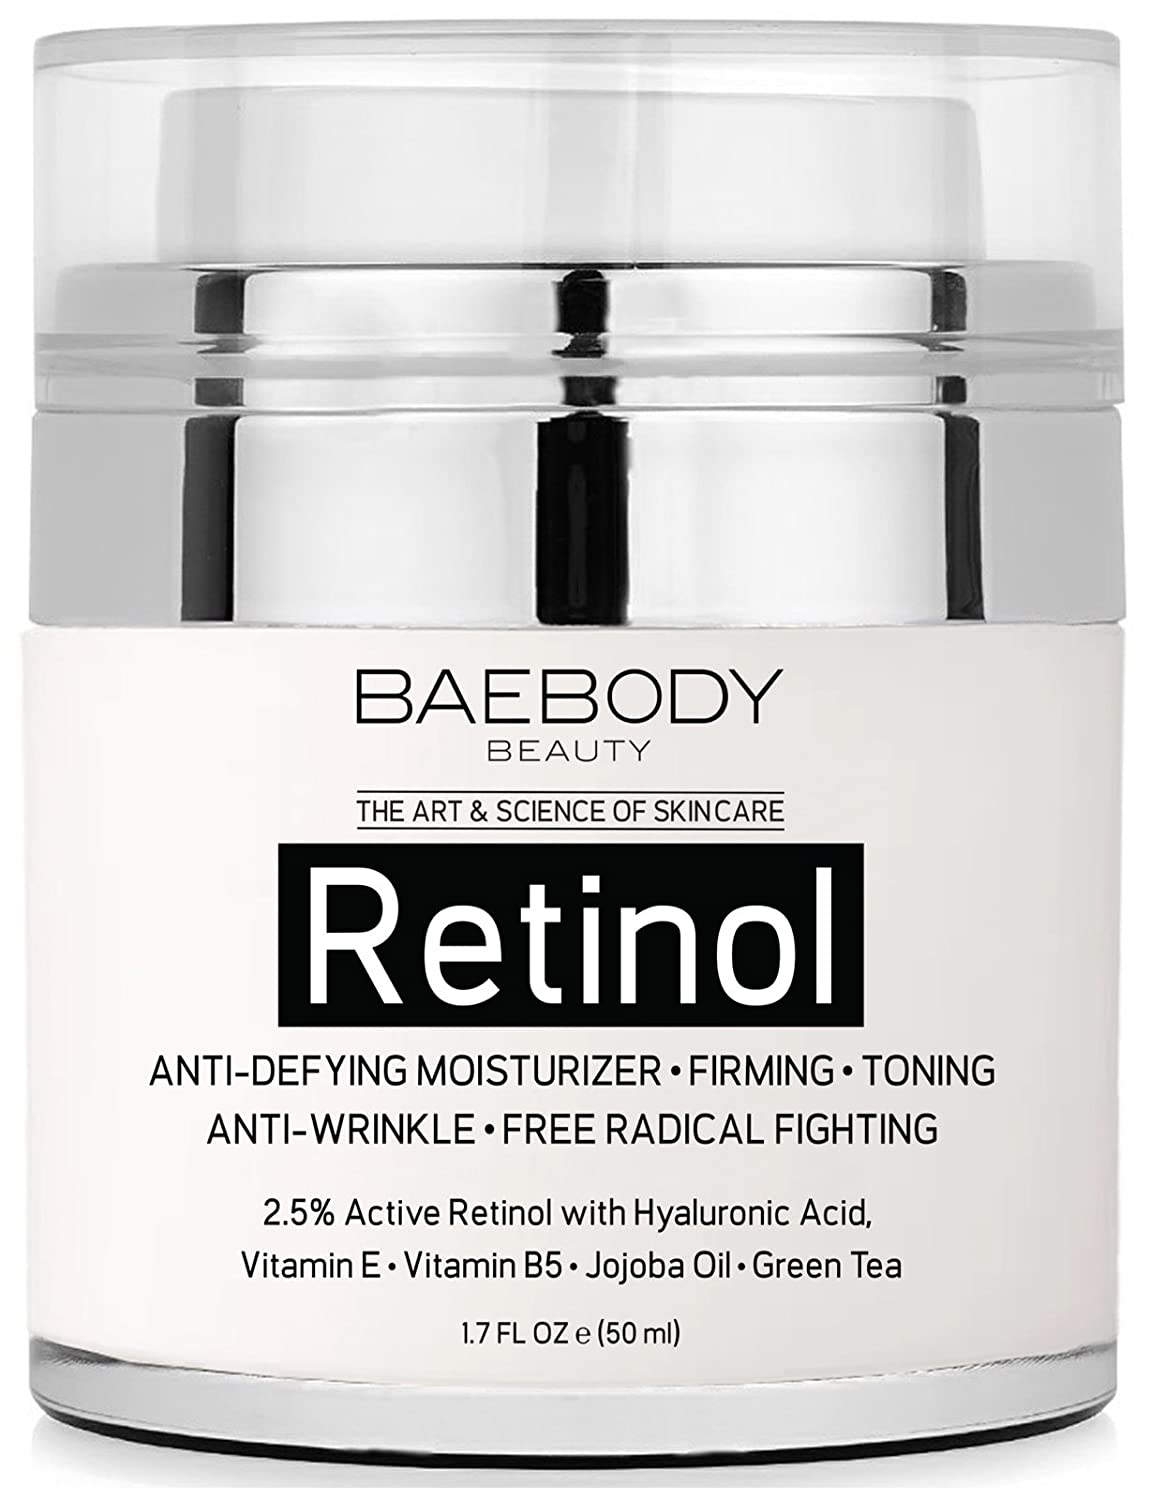 1. Baebody Retinol Moisturizes for Eyes and Face